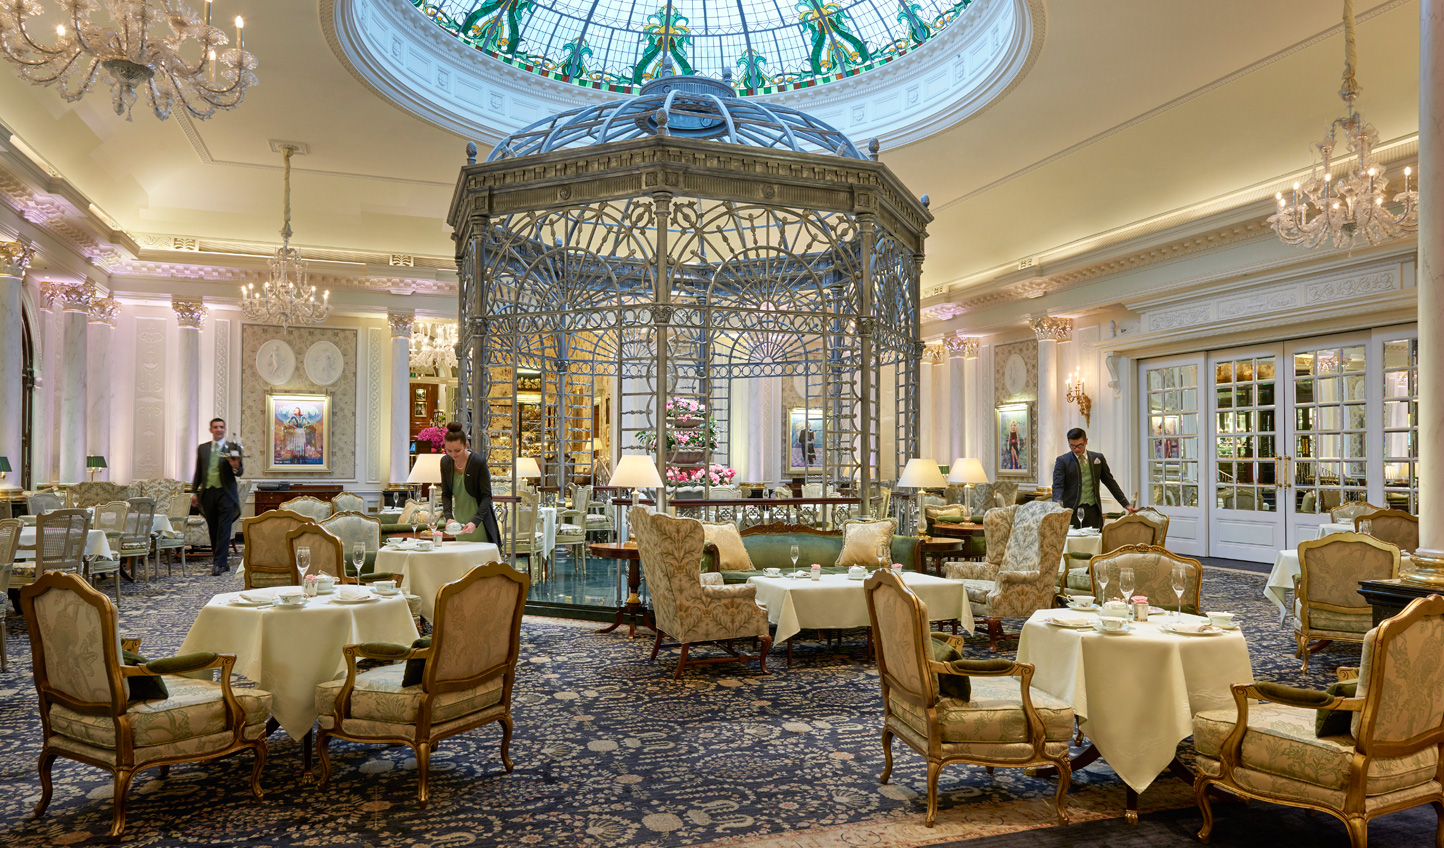 pierre-yves rochon Interior Design from Paris to Chicago: Pierre-Yves Rochon The Savoy Hotel London